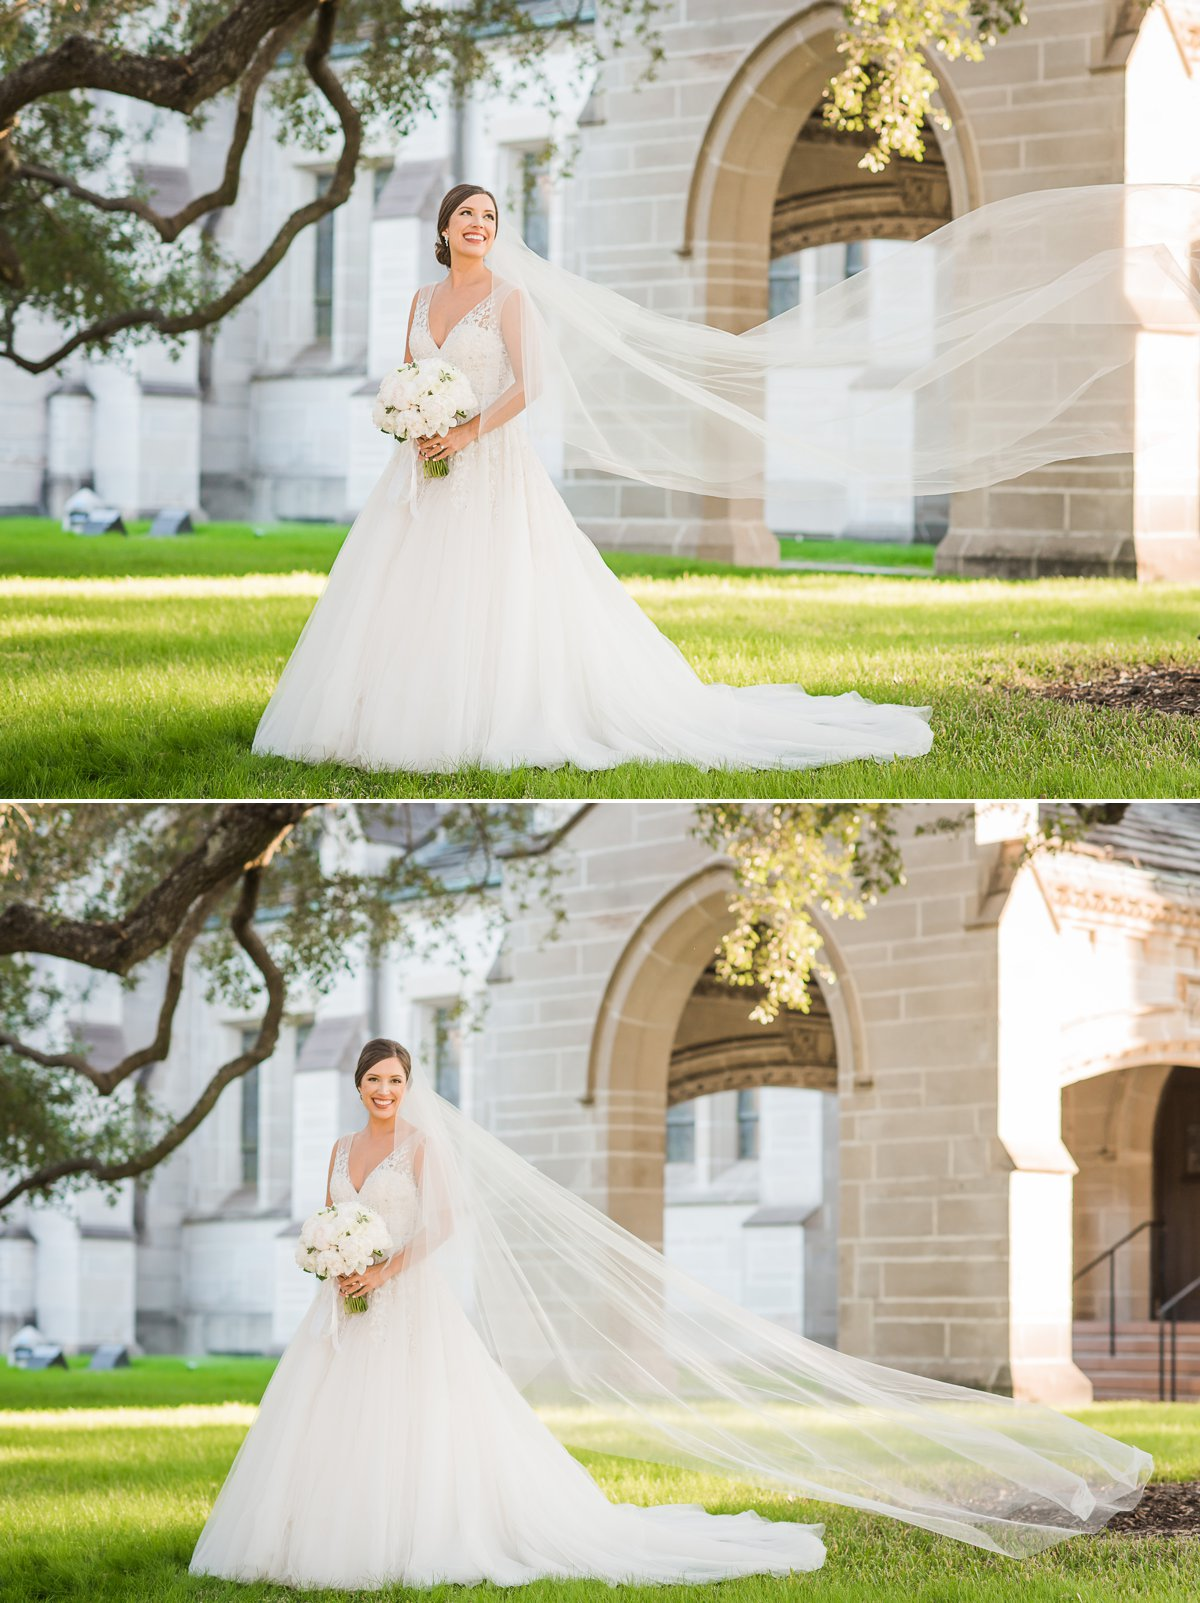 Houston-Bridal-Portraits by Nate Messarra